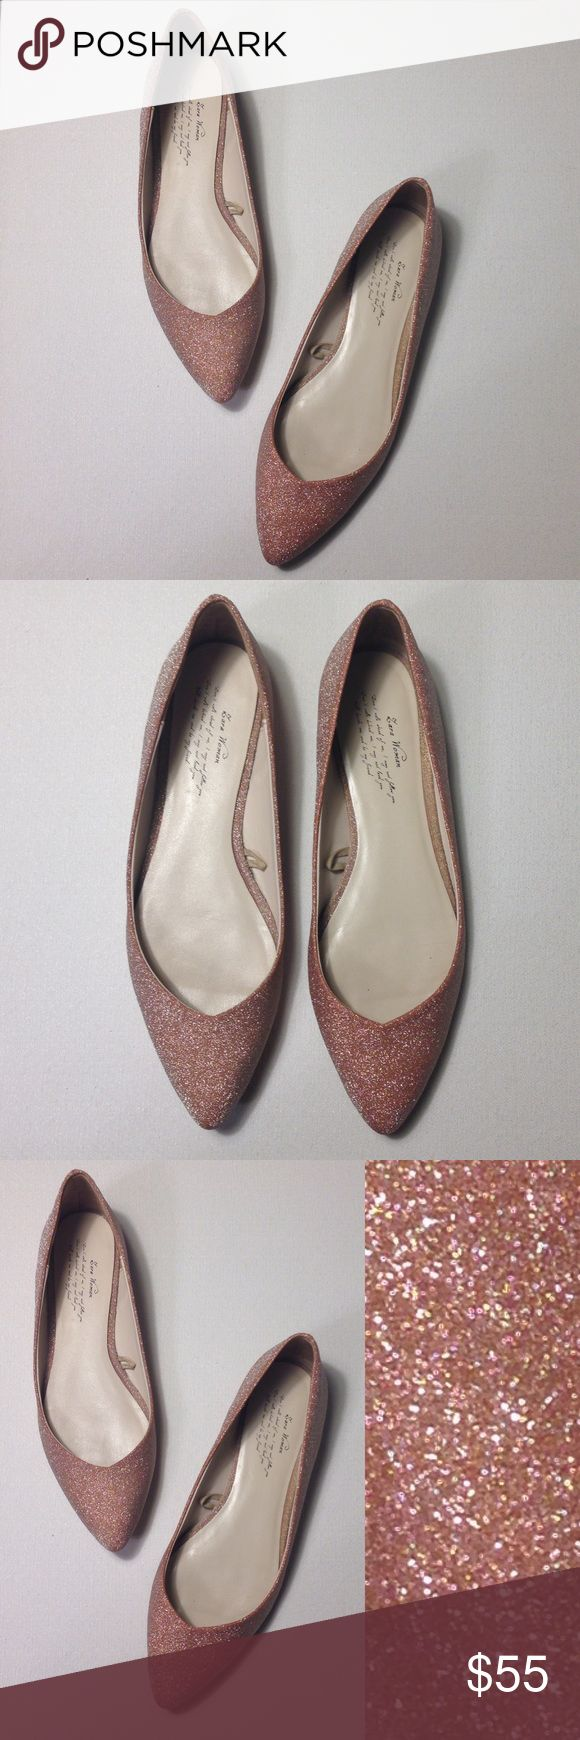 Zara Light Pink Sparkle Ballerina Flats Zara Light Pink Sparkle Ballerina Flats. Zara Size 38. Excellent Pre-Worn Condition. No Visible Stains, Fading or Flaws. Retail $89.90 #0219173501 ✨Please keep in mind that measurements are provided only as a guide and are approximate. Color appearance may vary depending on your monitor settings. Zara Shoes Flats & Loafers